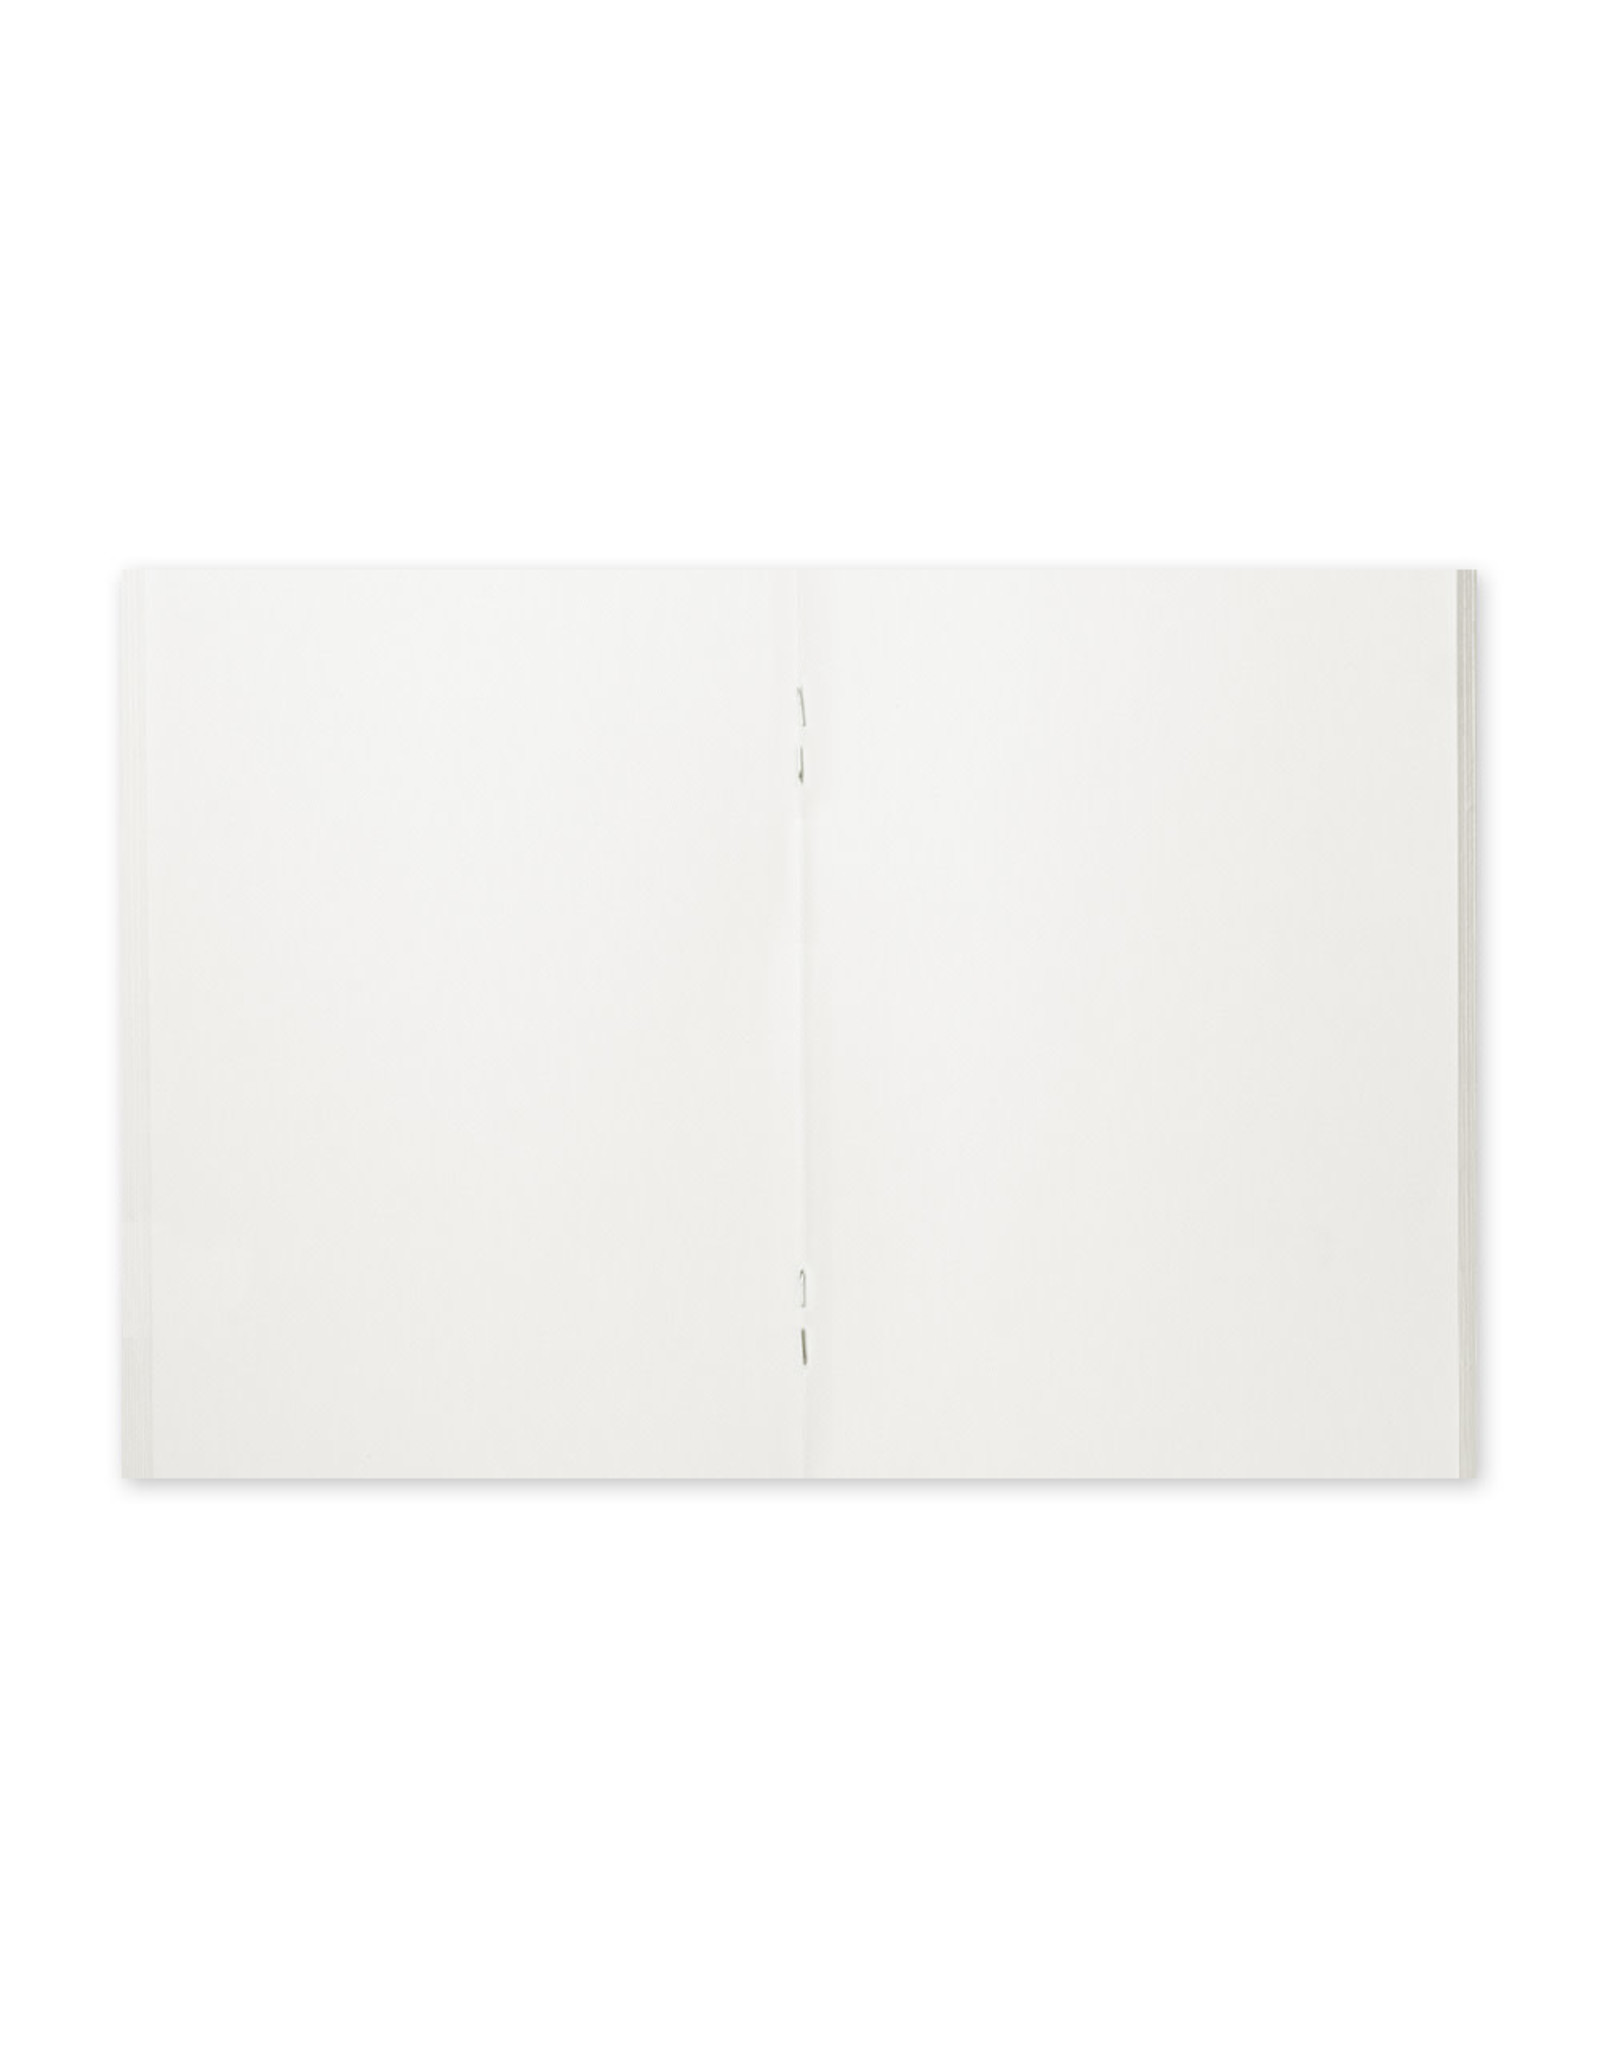 Traveler's Company 008 SKETCH PAPER BLANK 32 PAGES PASSPORT SIZE